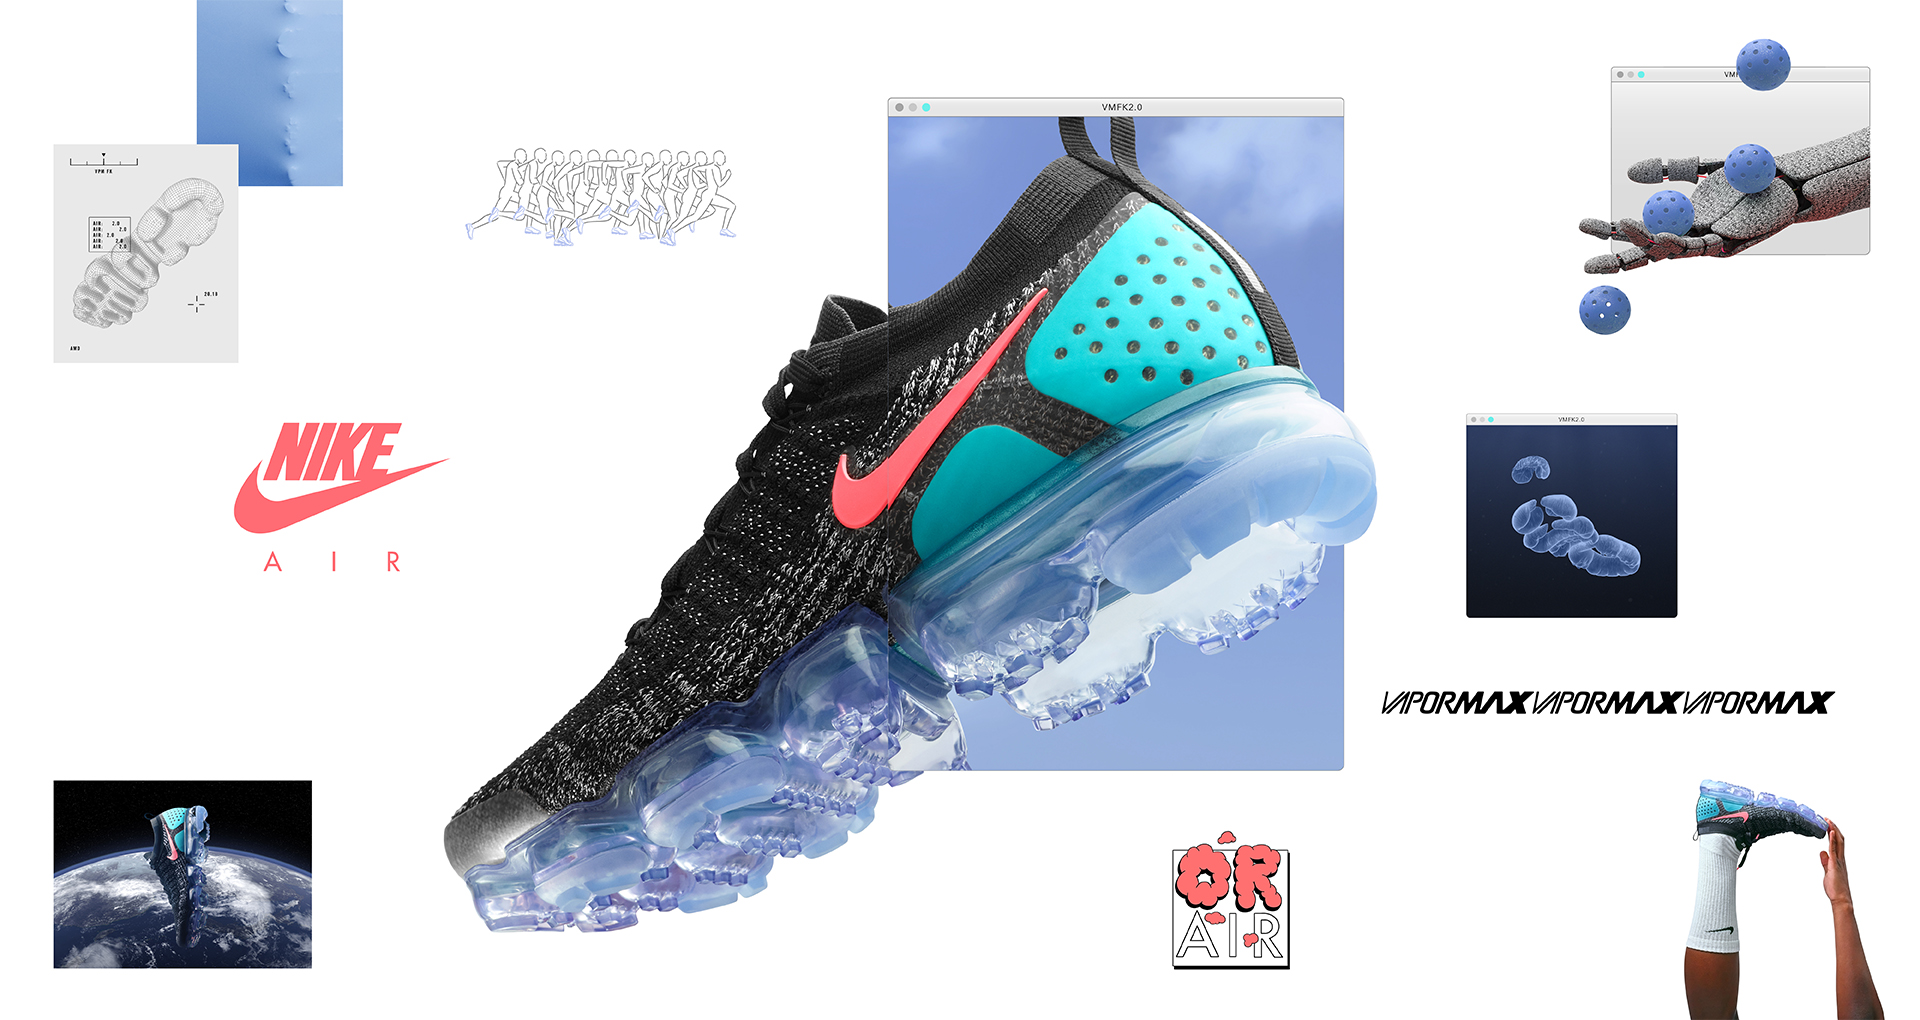 reputable site 5297d 595ed The Nike Air VaporMax Flyknit 2.0 Arrives in March Before ...